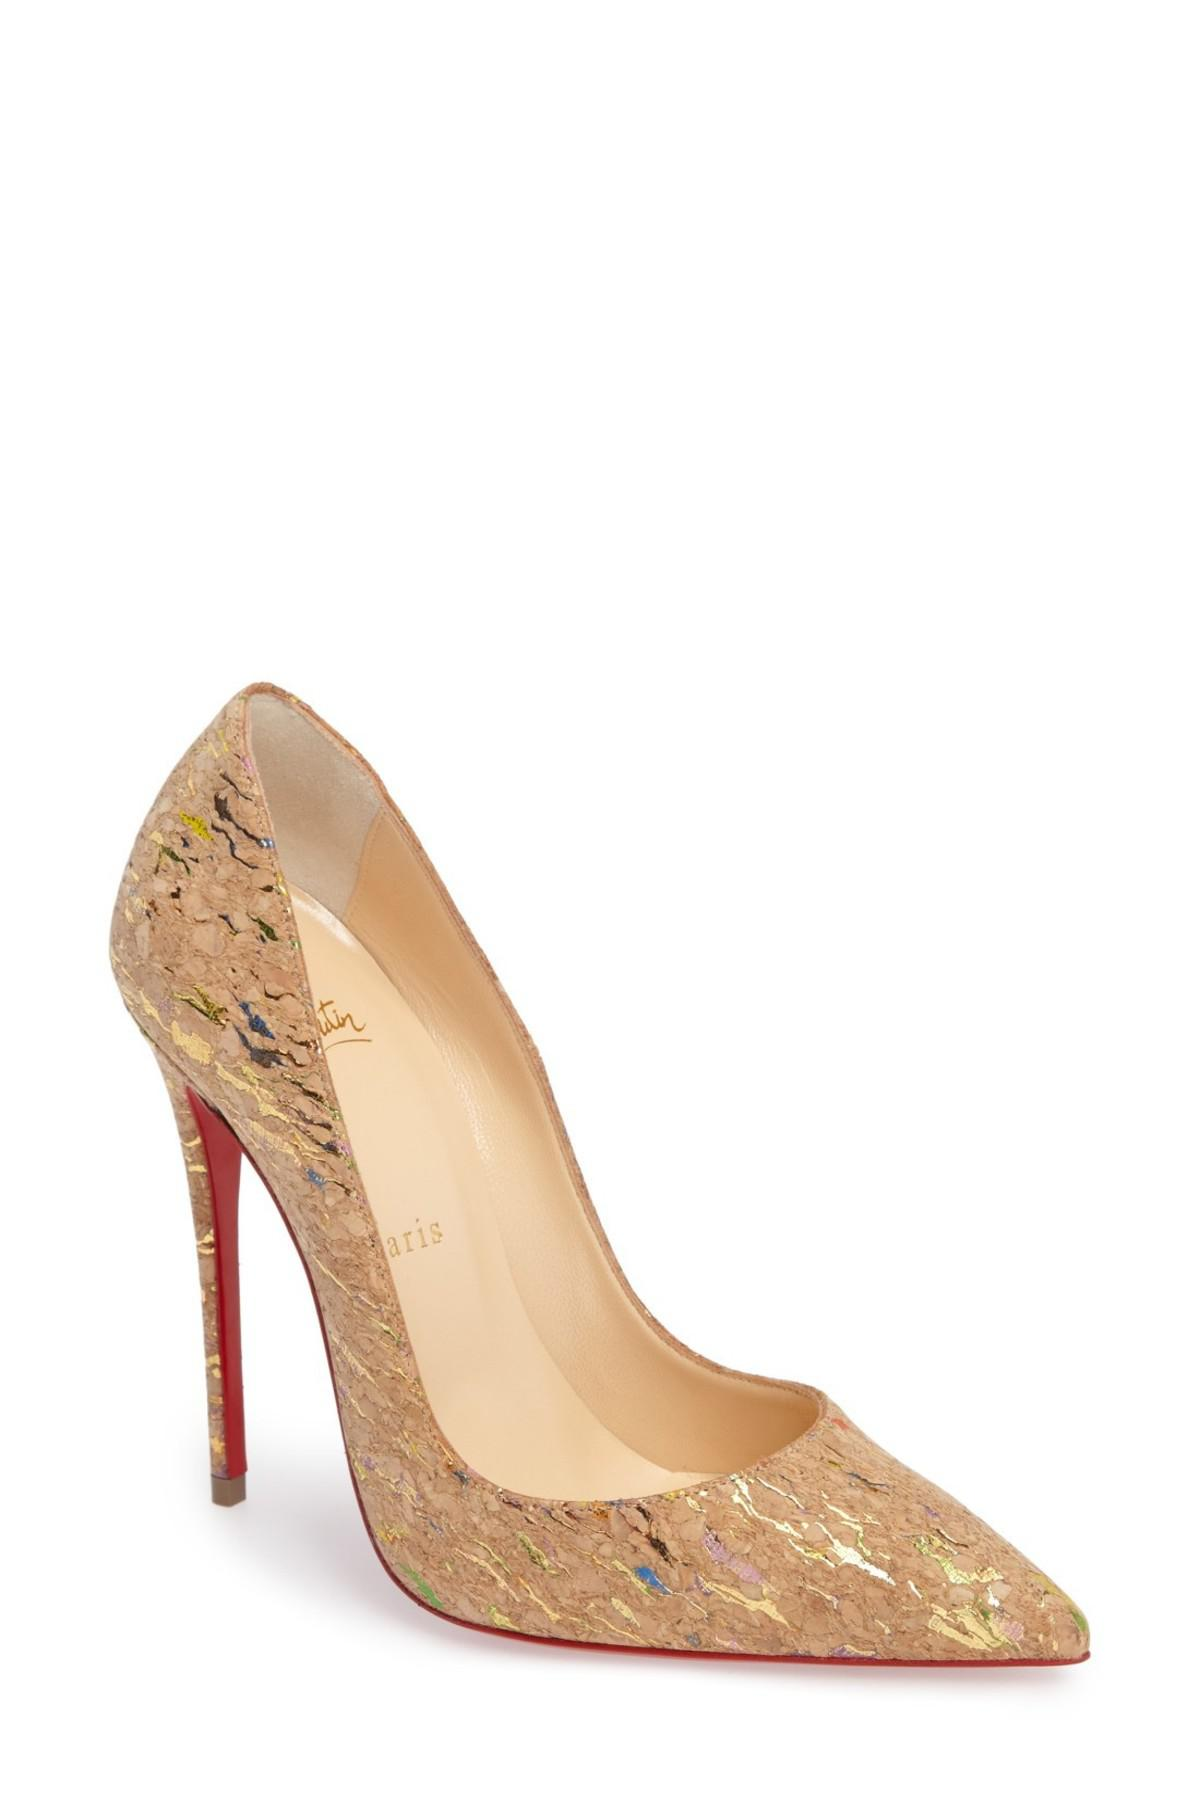 be2db13a4a9 Lyst - Christian Louboutin  so Kate  Pointy Toe Pump in Natural